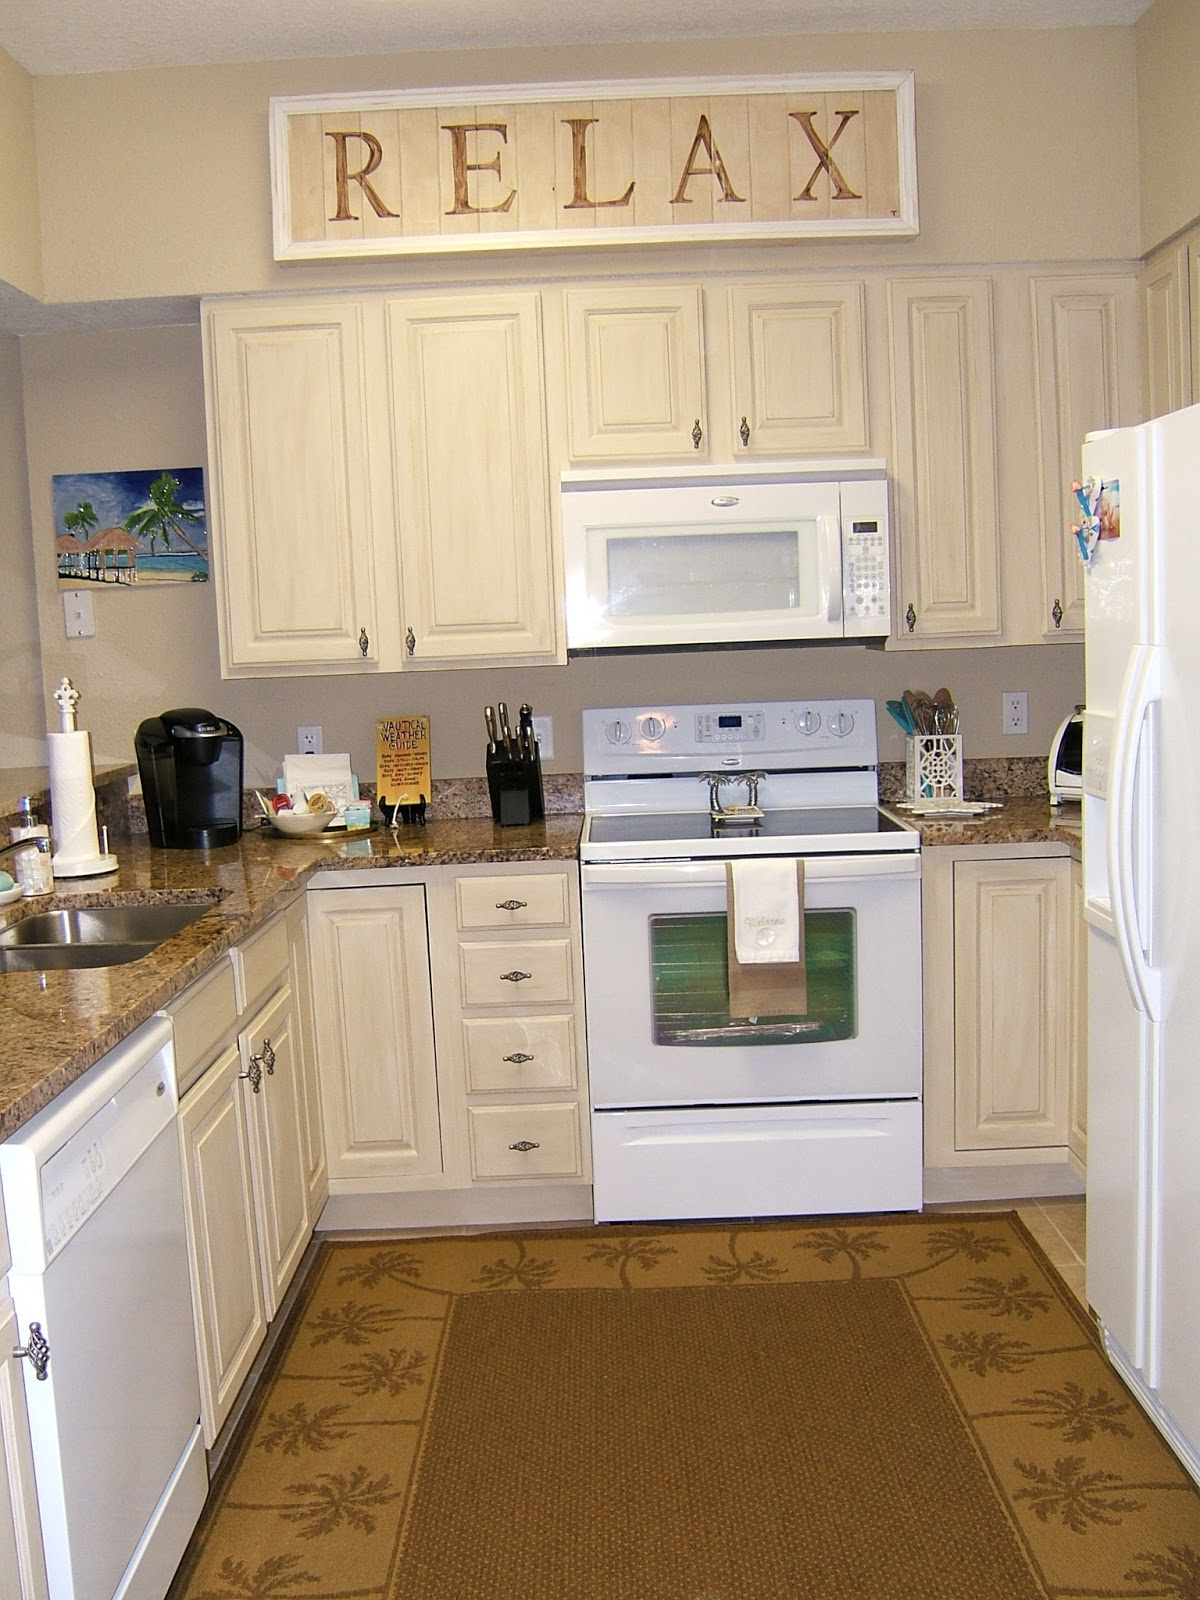 Kitchen rug ideas nay or yea homesfeed for Kitchen ideas small kitchen